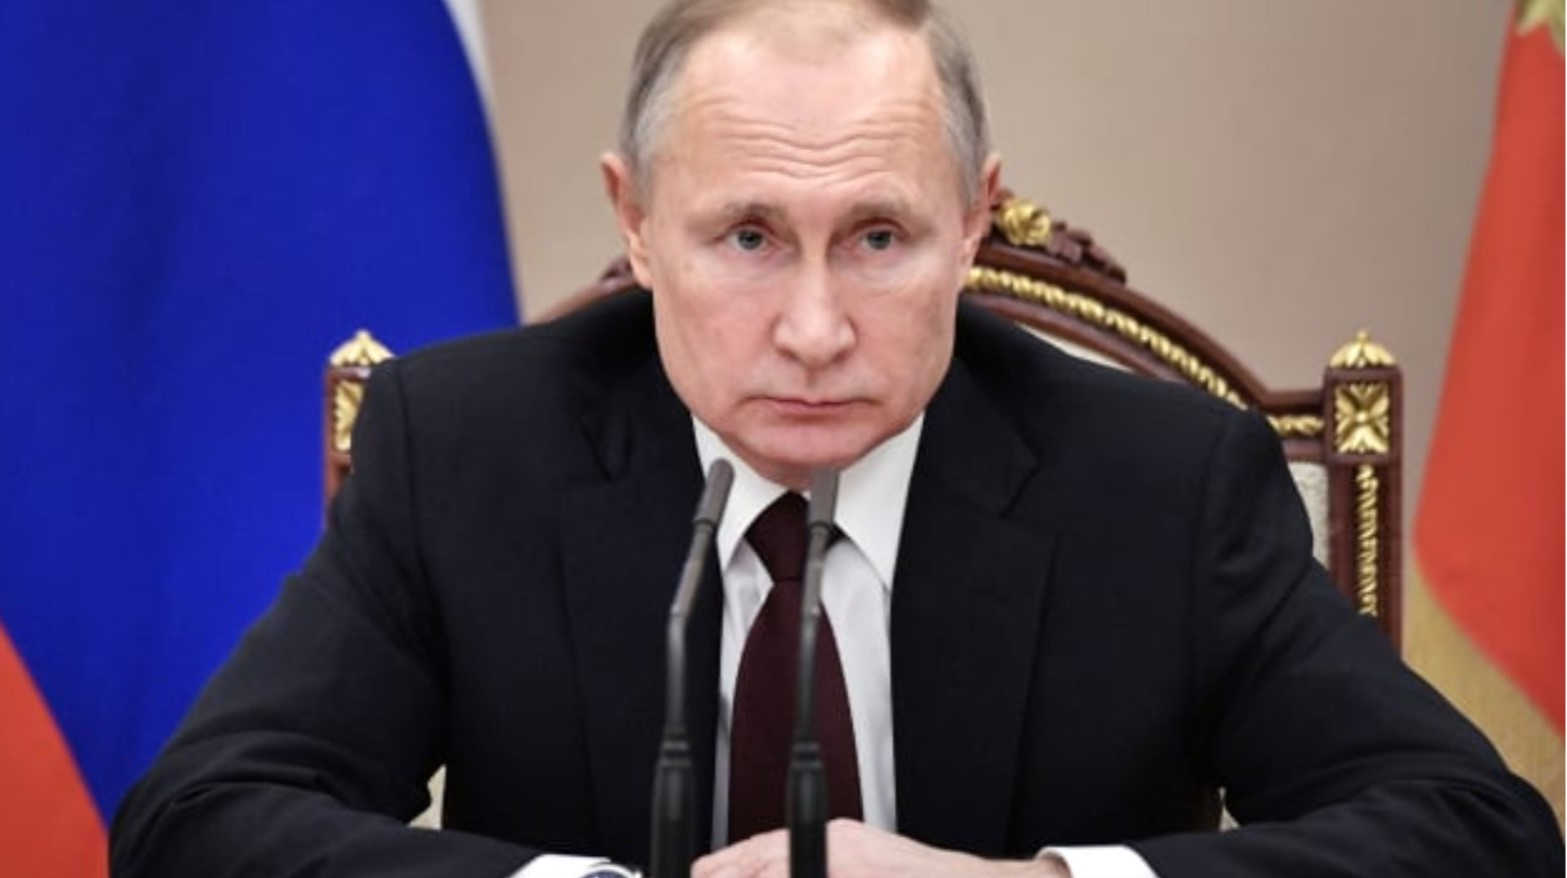 PUTIN AT THE SOURCE OF NEW WORLD ORDER